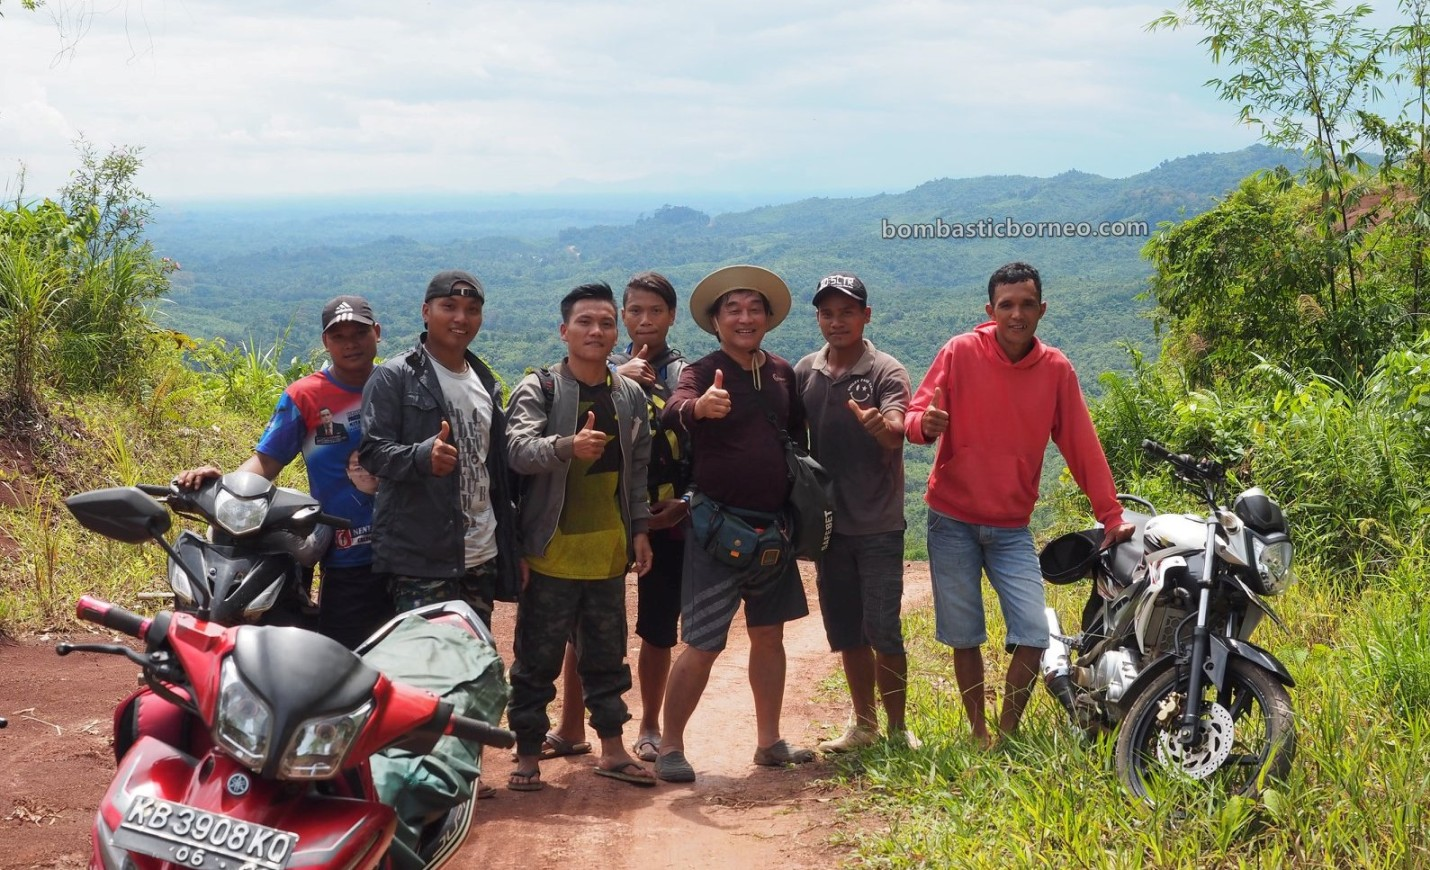 Desa Tamong, highland, village, backpackers, exploration, Gawai Padi, Kalimantan Barat, Bengkayang, Siding, native, Dayak Bidayuh, travel guide, 探索婆罗洲游踪, 印尼西加里曼丹, 孟加映土著部落